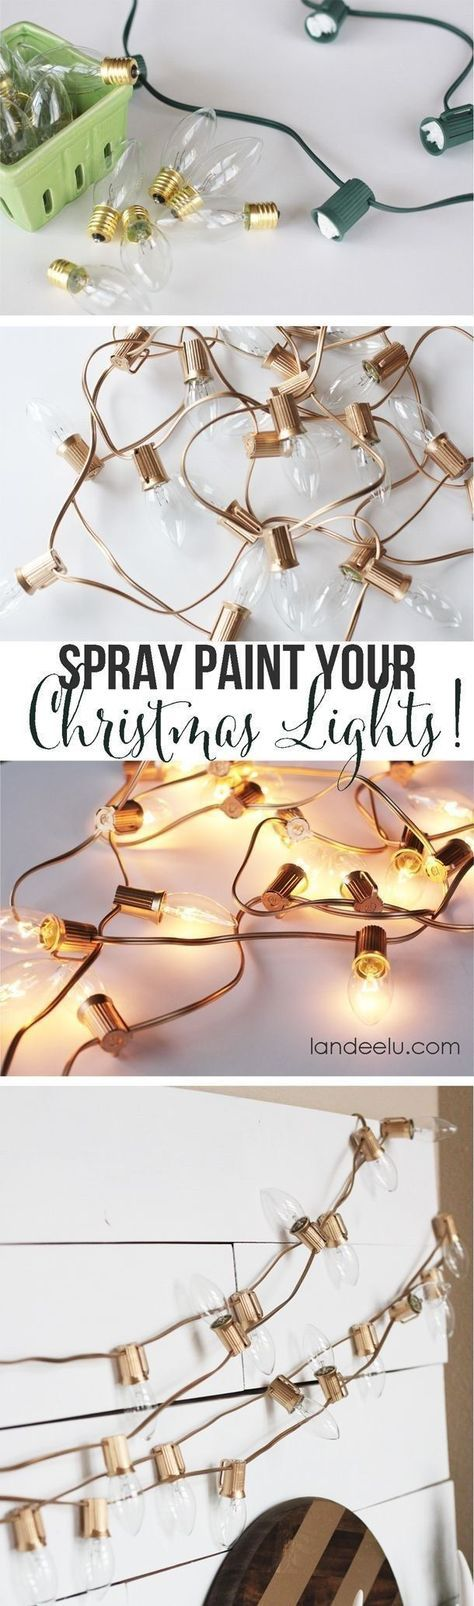 String Light DIY ideas for Cool Home Decor - Spray Painted Christmas Lights are Fun for Teens Room, Dorm, Apartment or Home